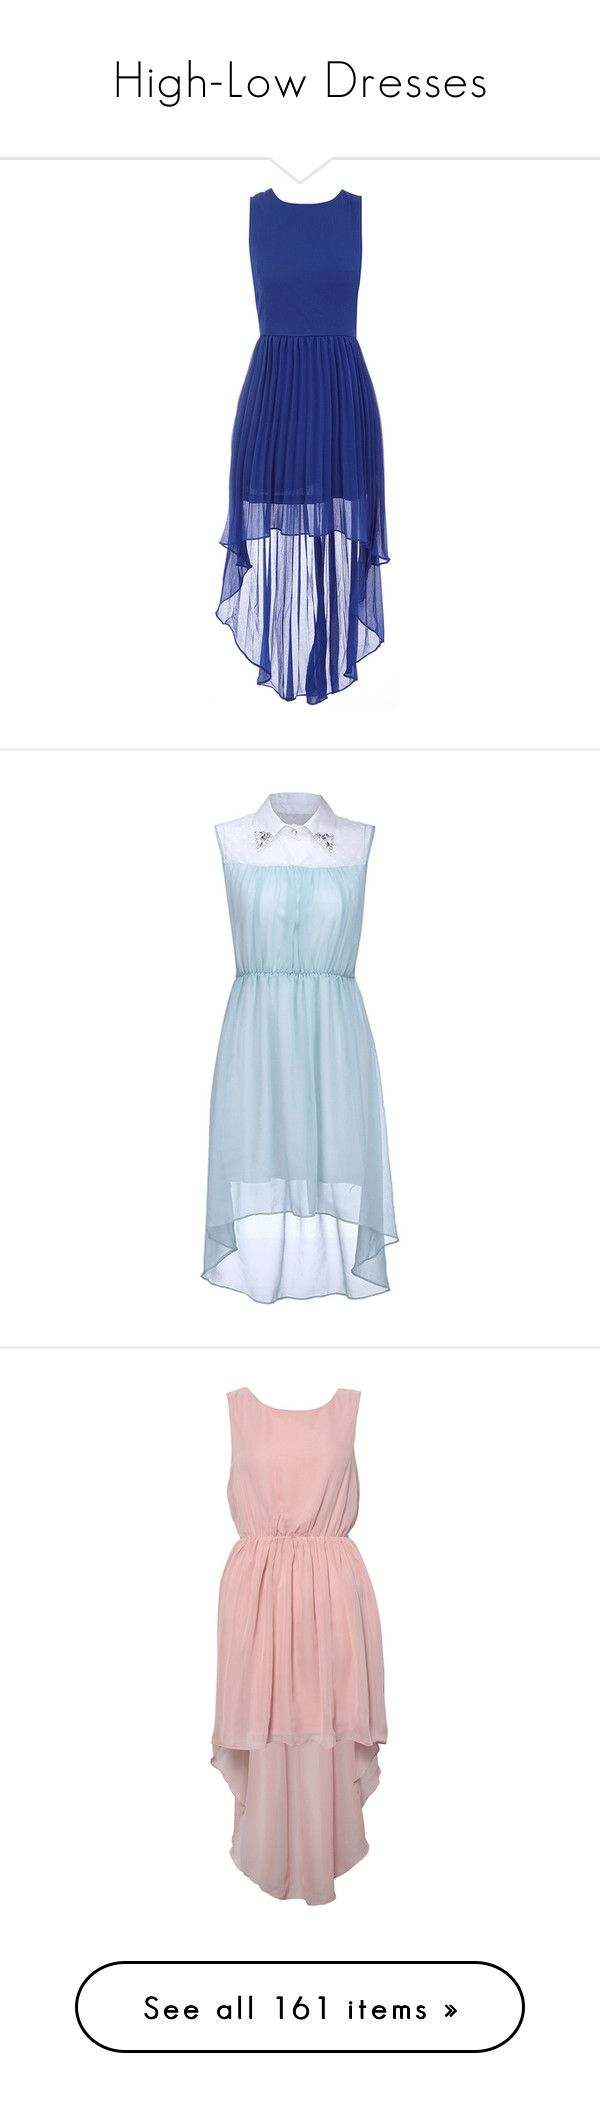 """High-Low Dresses"" by lulucosby ❤ liked on Polyvore featuring dresses, vestidos, blue, electric blue dress, blue dress, blue zipper dress, blue pleated dress, zipper dress, dip hem dresses and short front long back dress"